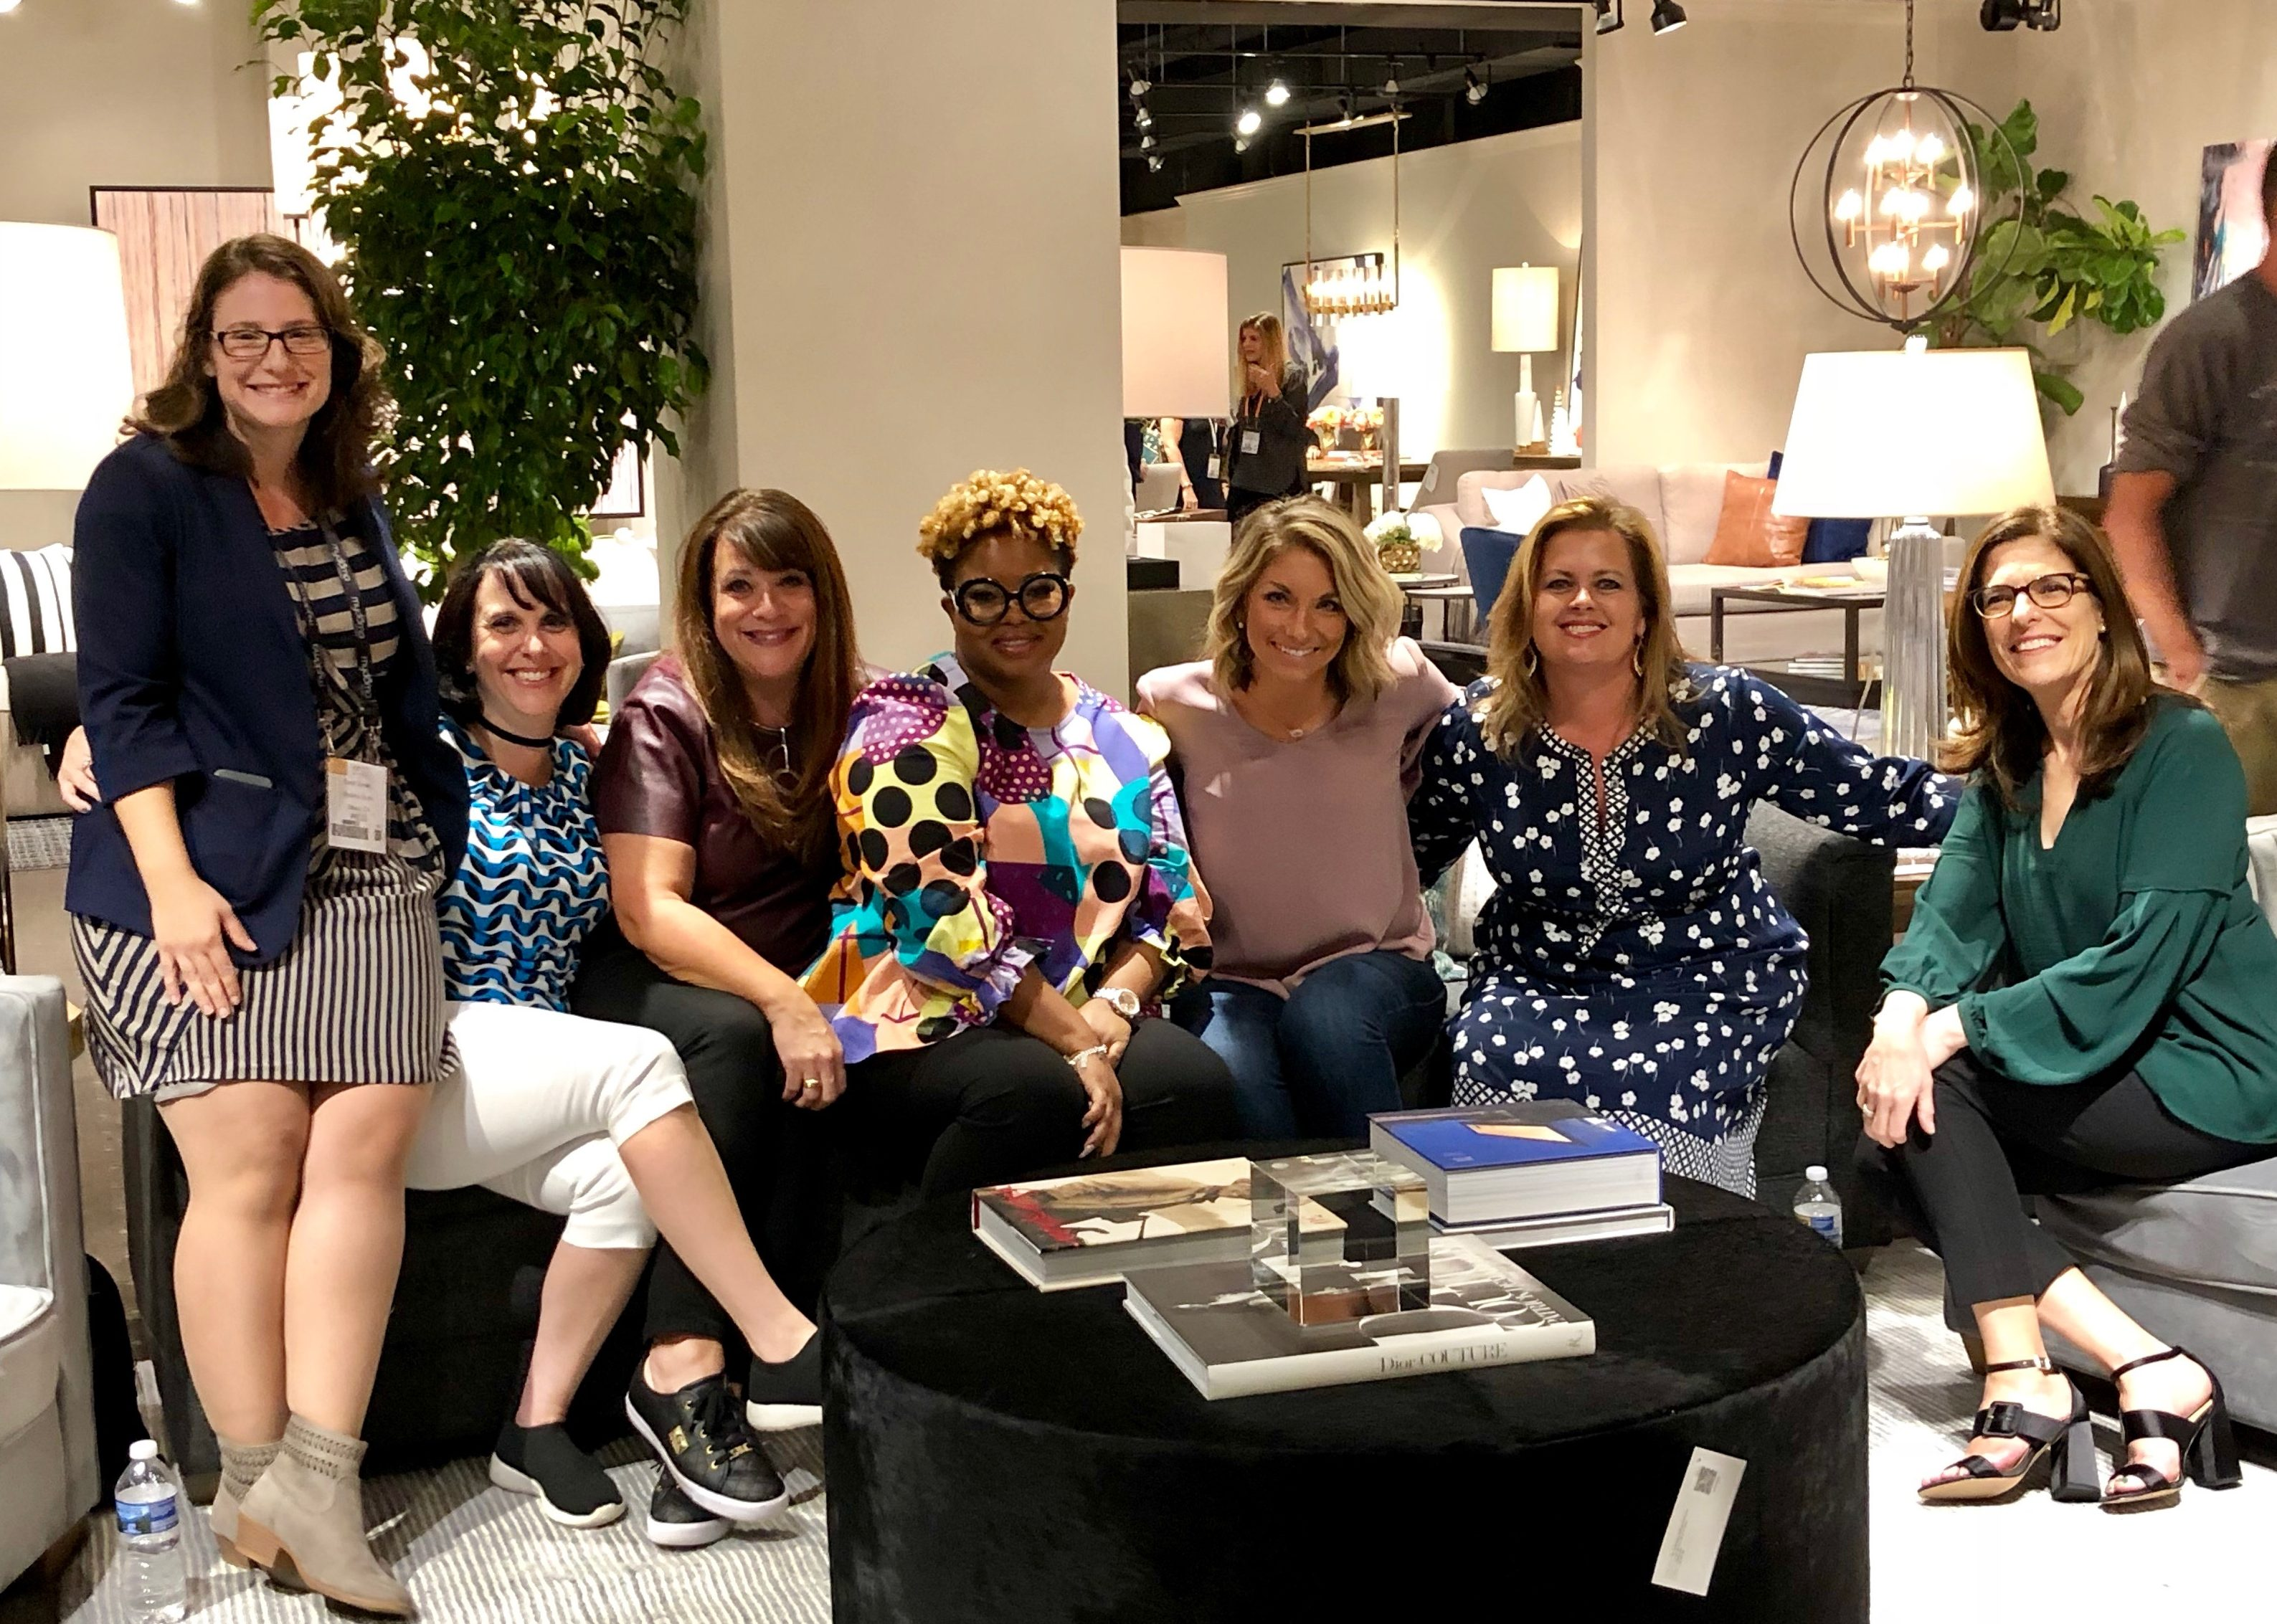 From Organized to Overwhelmed moderated by LuAnn Nigara with Jessica Duce, Claire Jefford, Wendy Woloshchuk, Jessica Salomone, Lauren Ashley at Alder & Tweed